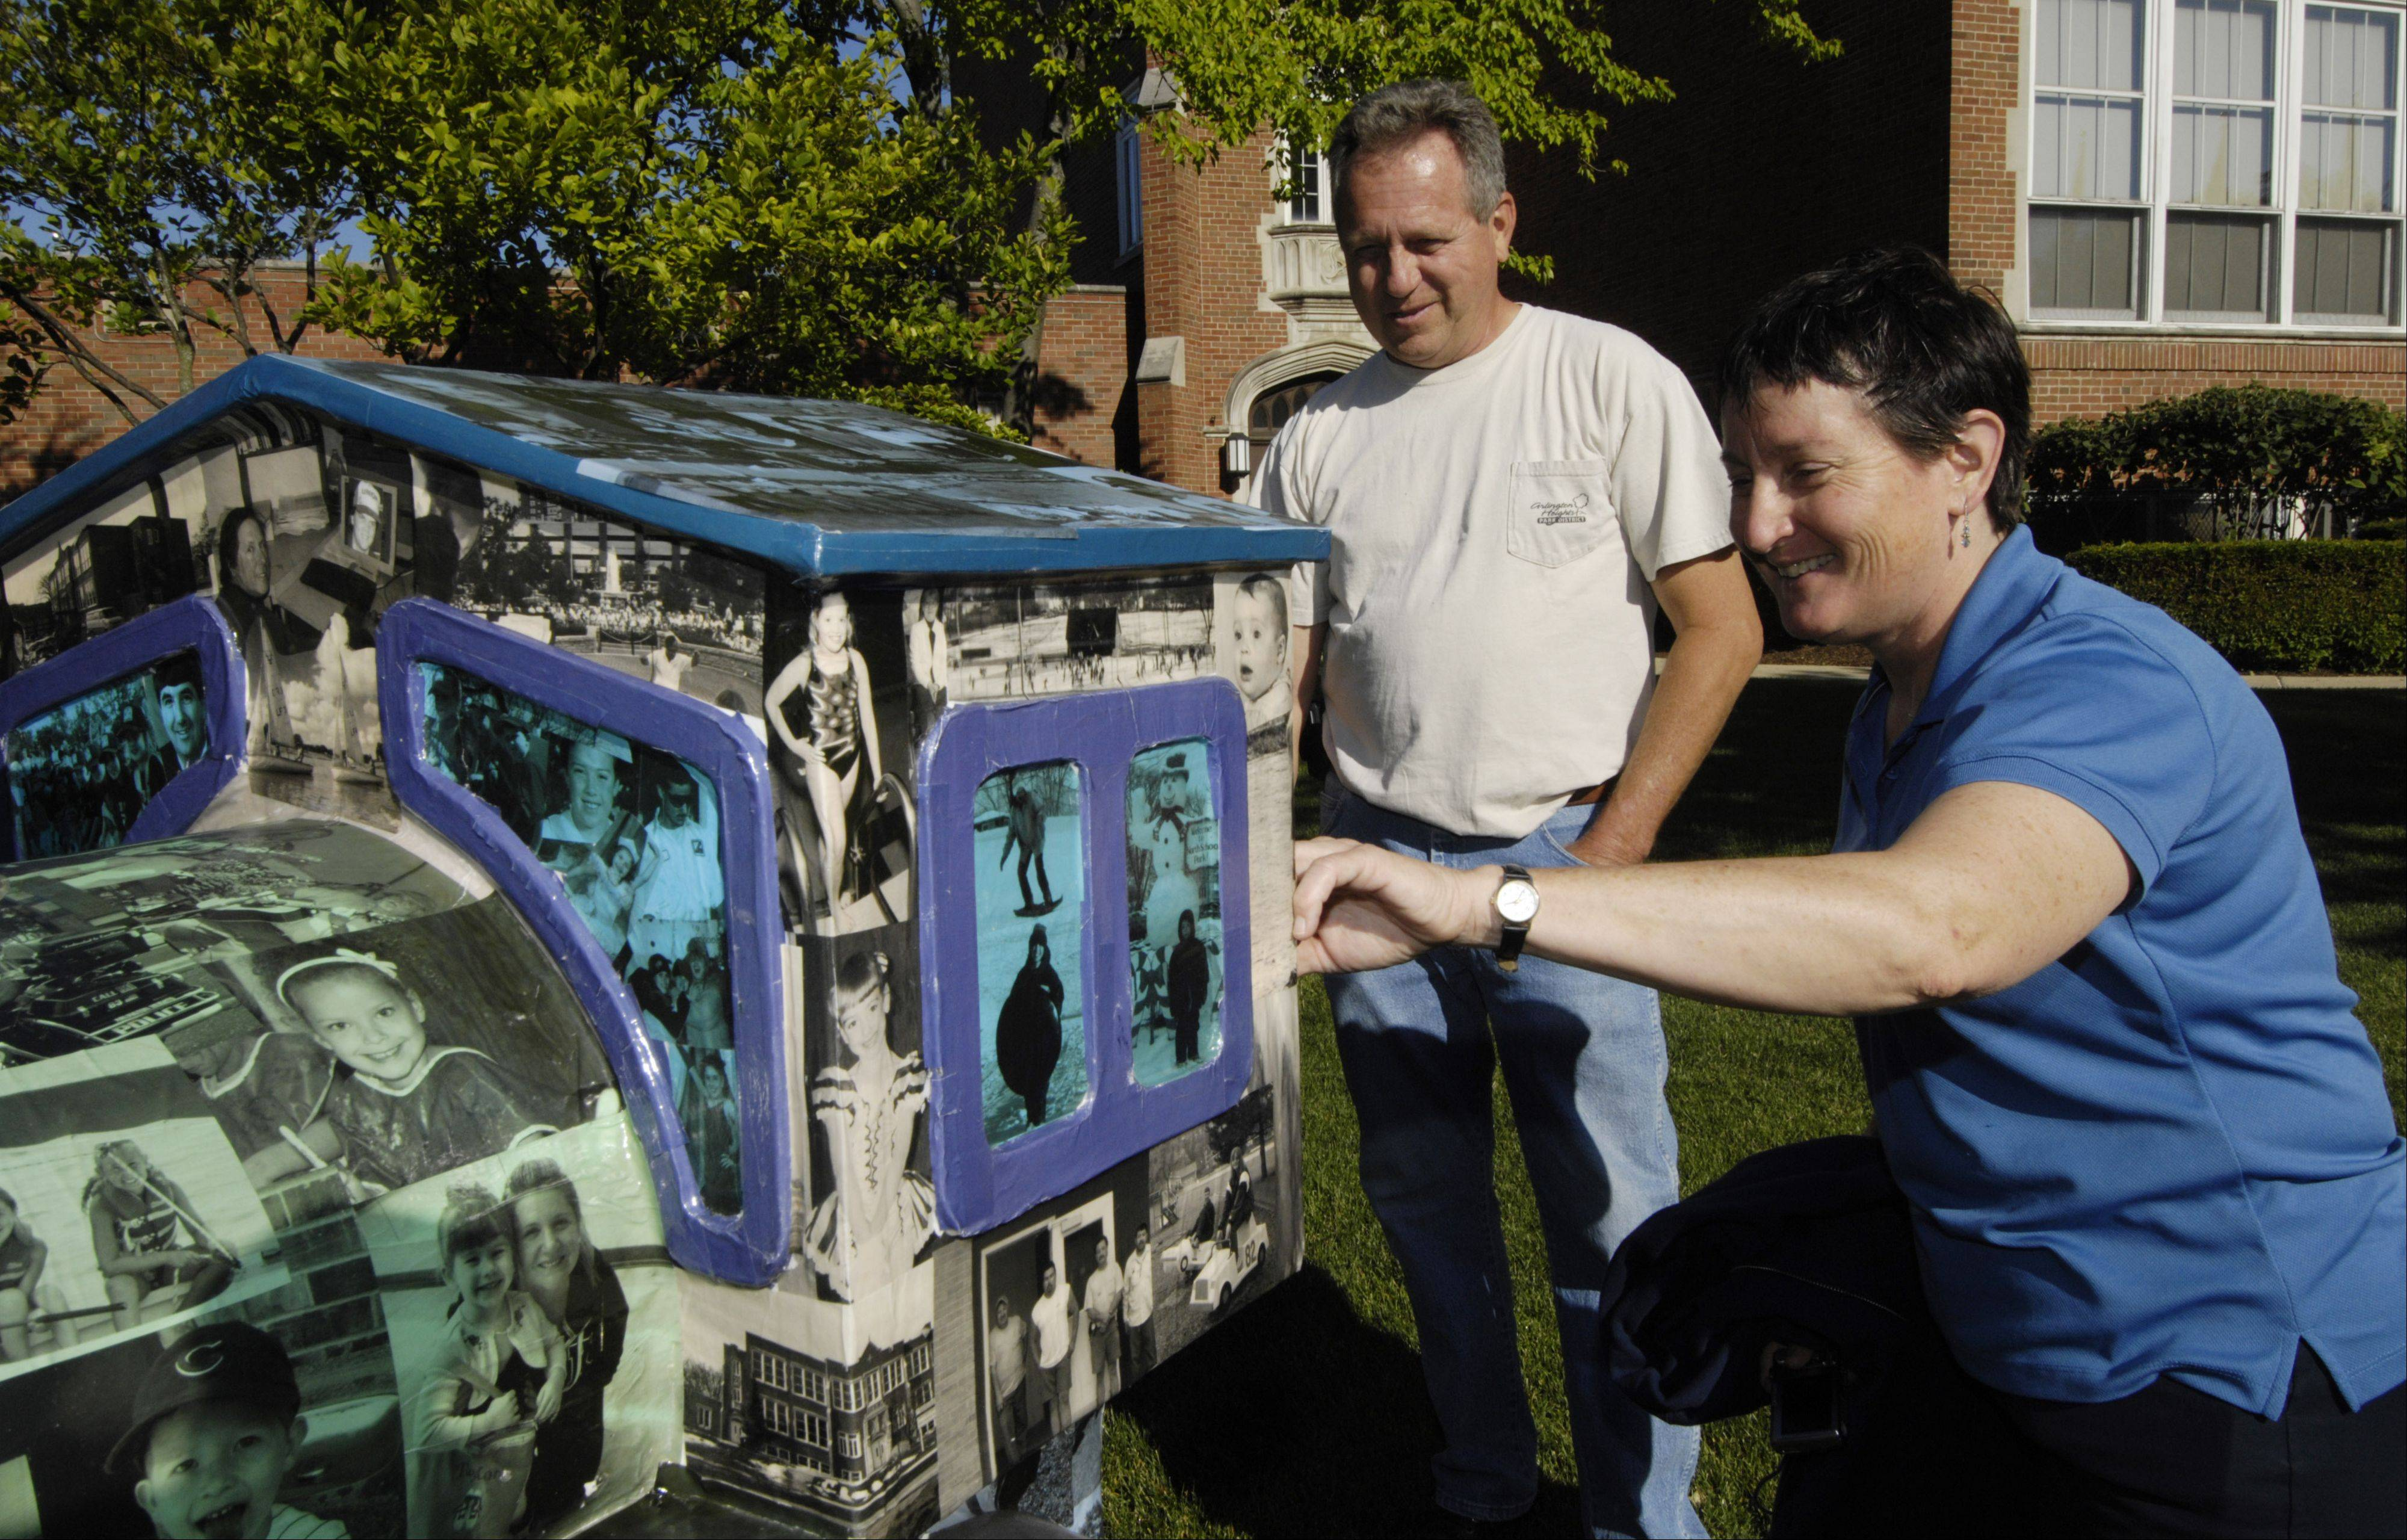 Pat Klawitter, right, chairman of the Arlington Heights Park District's morale committee, and Rich Knox, parks department staff member, talk about photos decorating the district's train for the village's 125th anniversary.